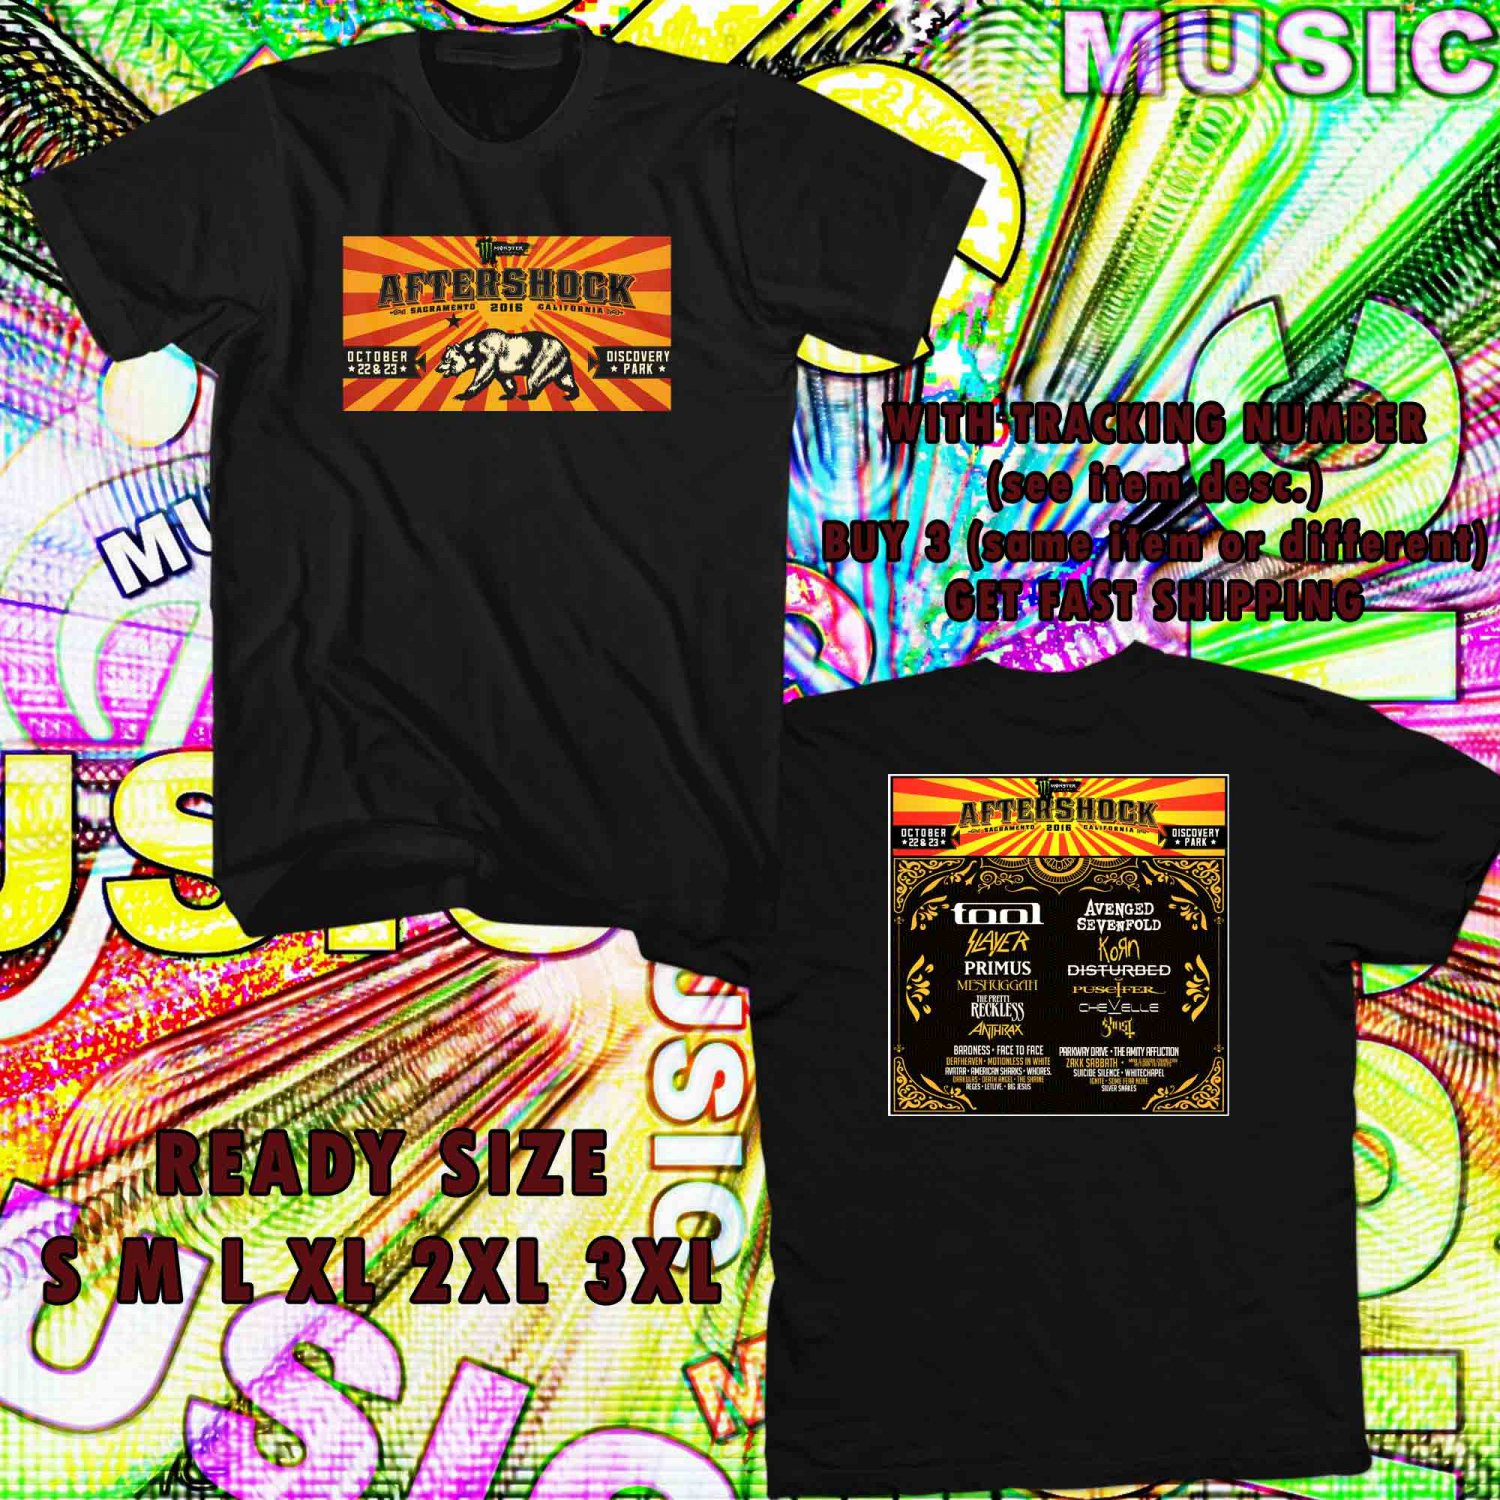 WOW AFTERSHOCK FESTIVAL TOUR OCT,2016 BLACK TEE S-3XL ASTR